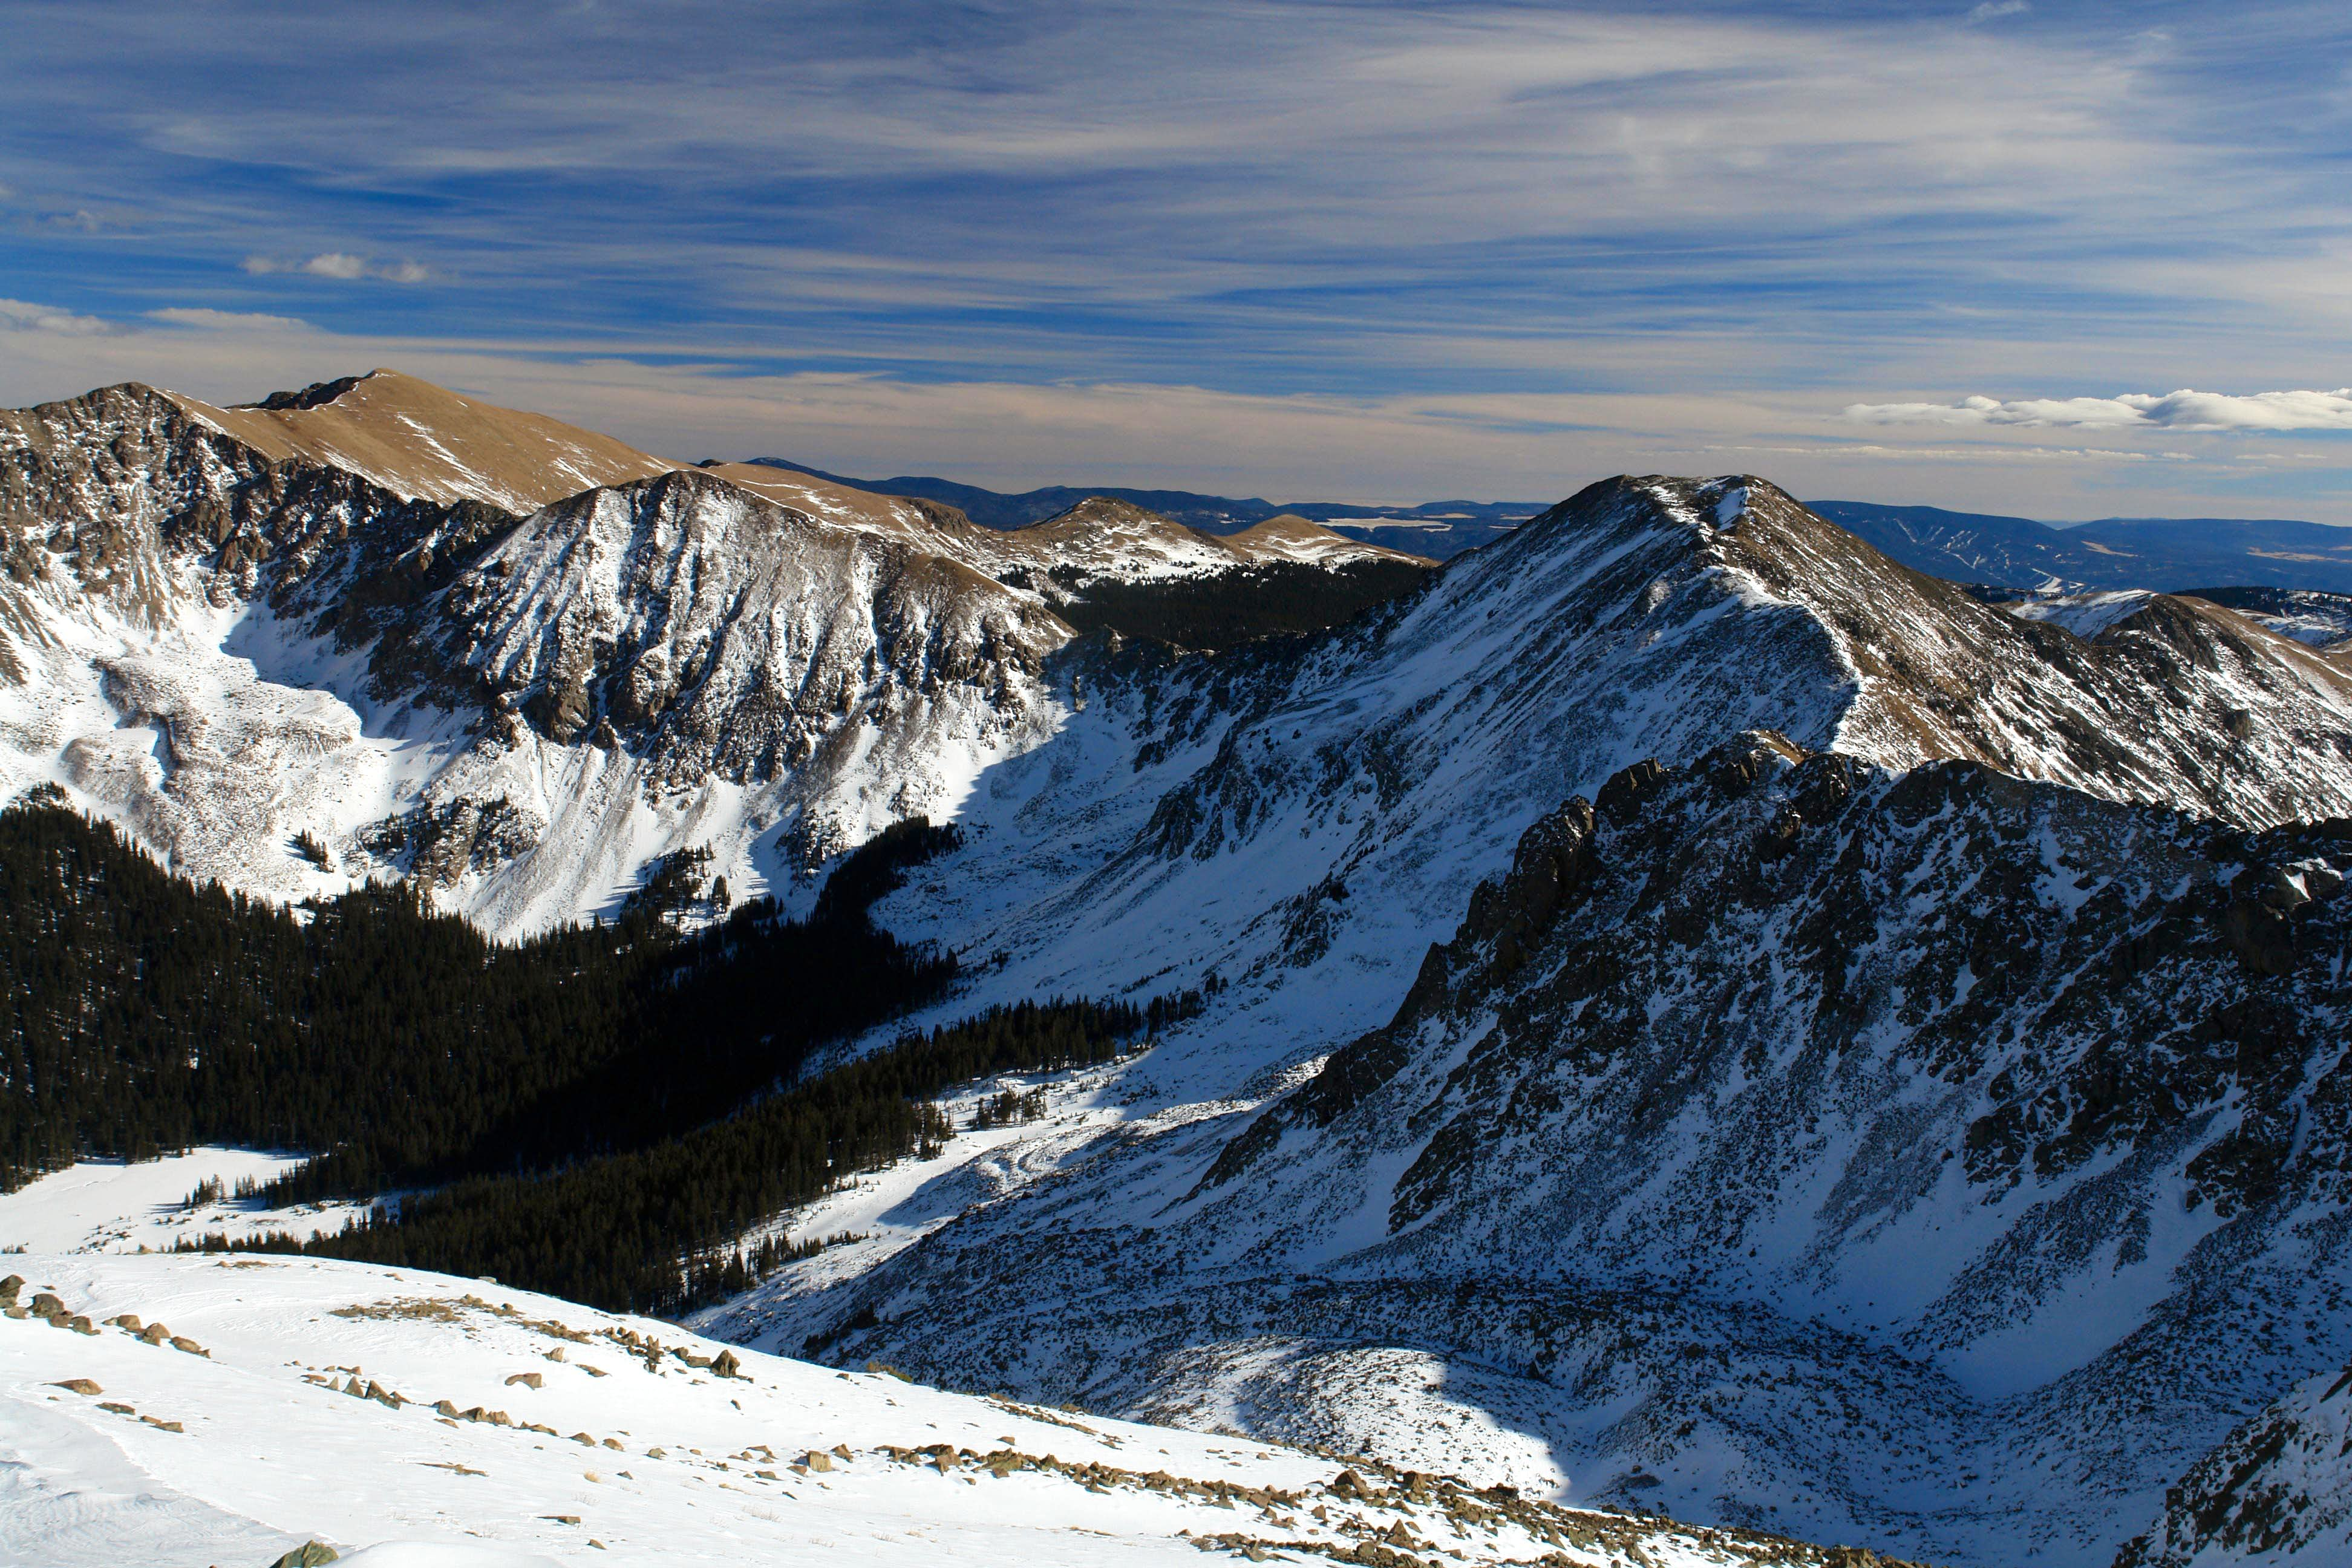 Kachina-Wheeler Peak Traverse